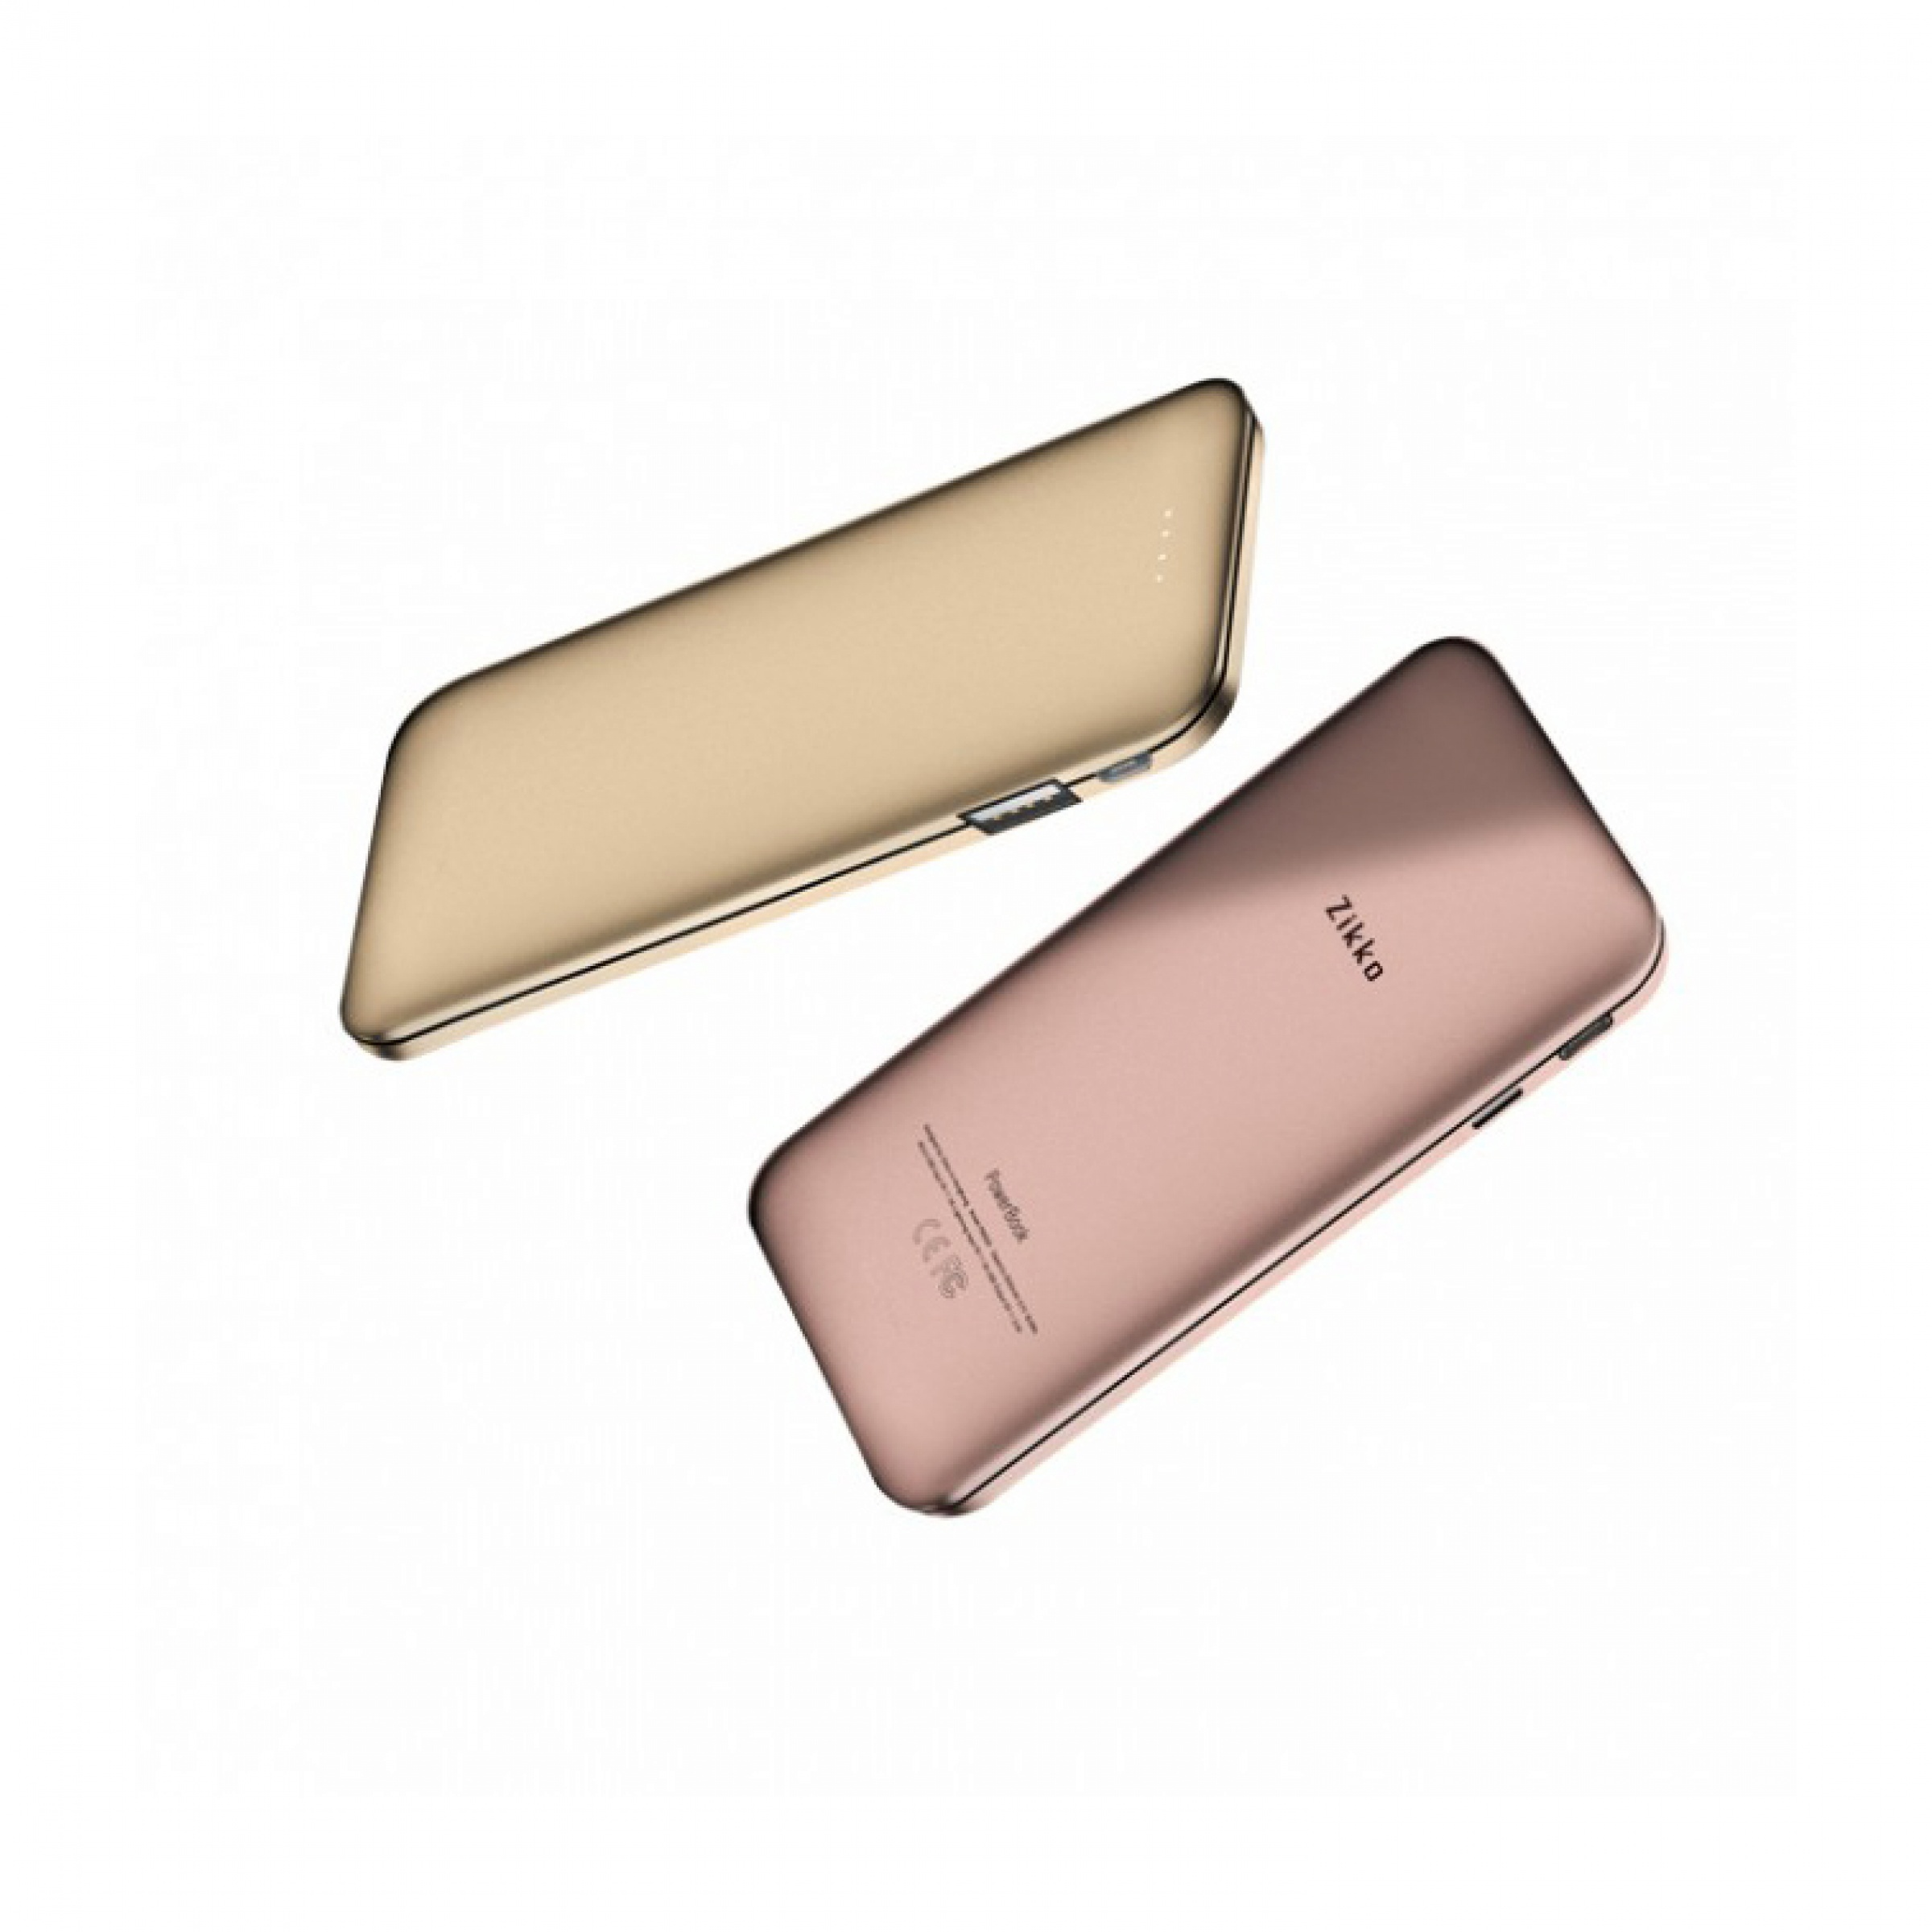 Zikko-5000mah-alloy-powerbank-gold